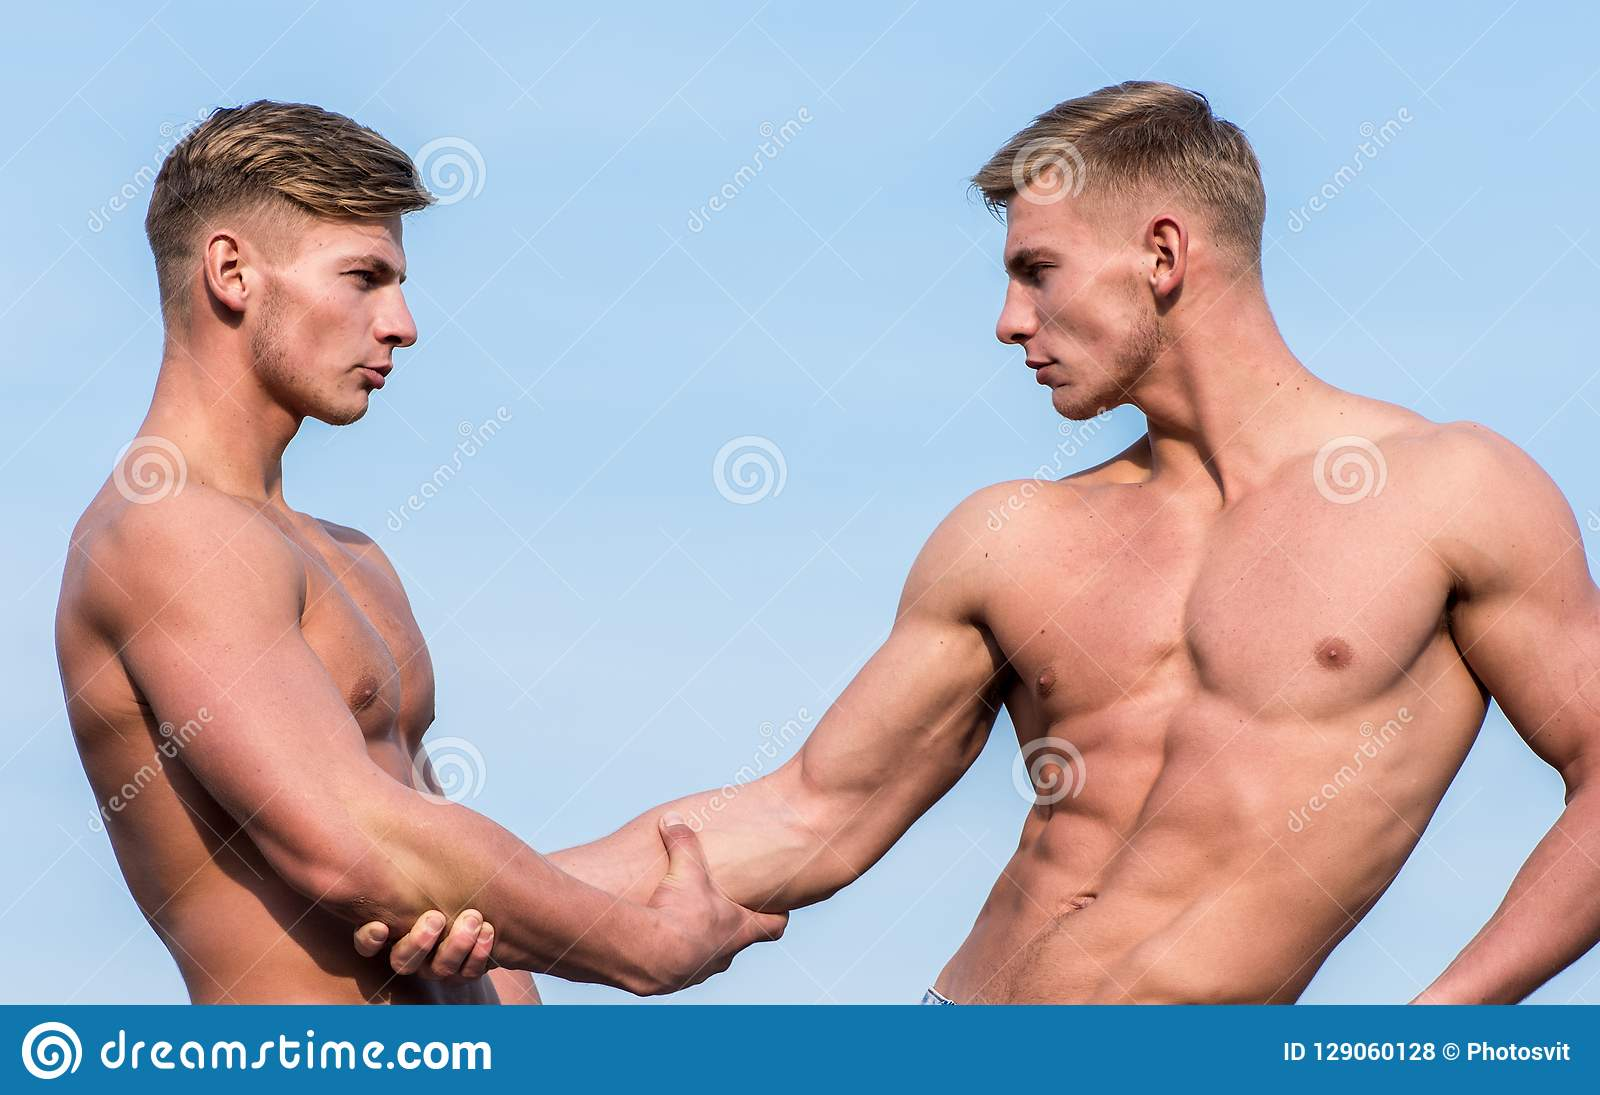 Twins man show naked